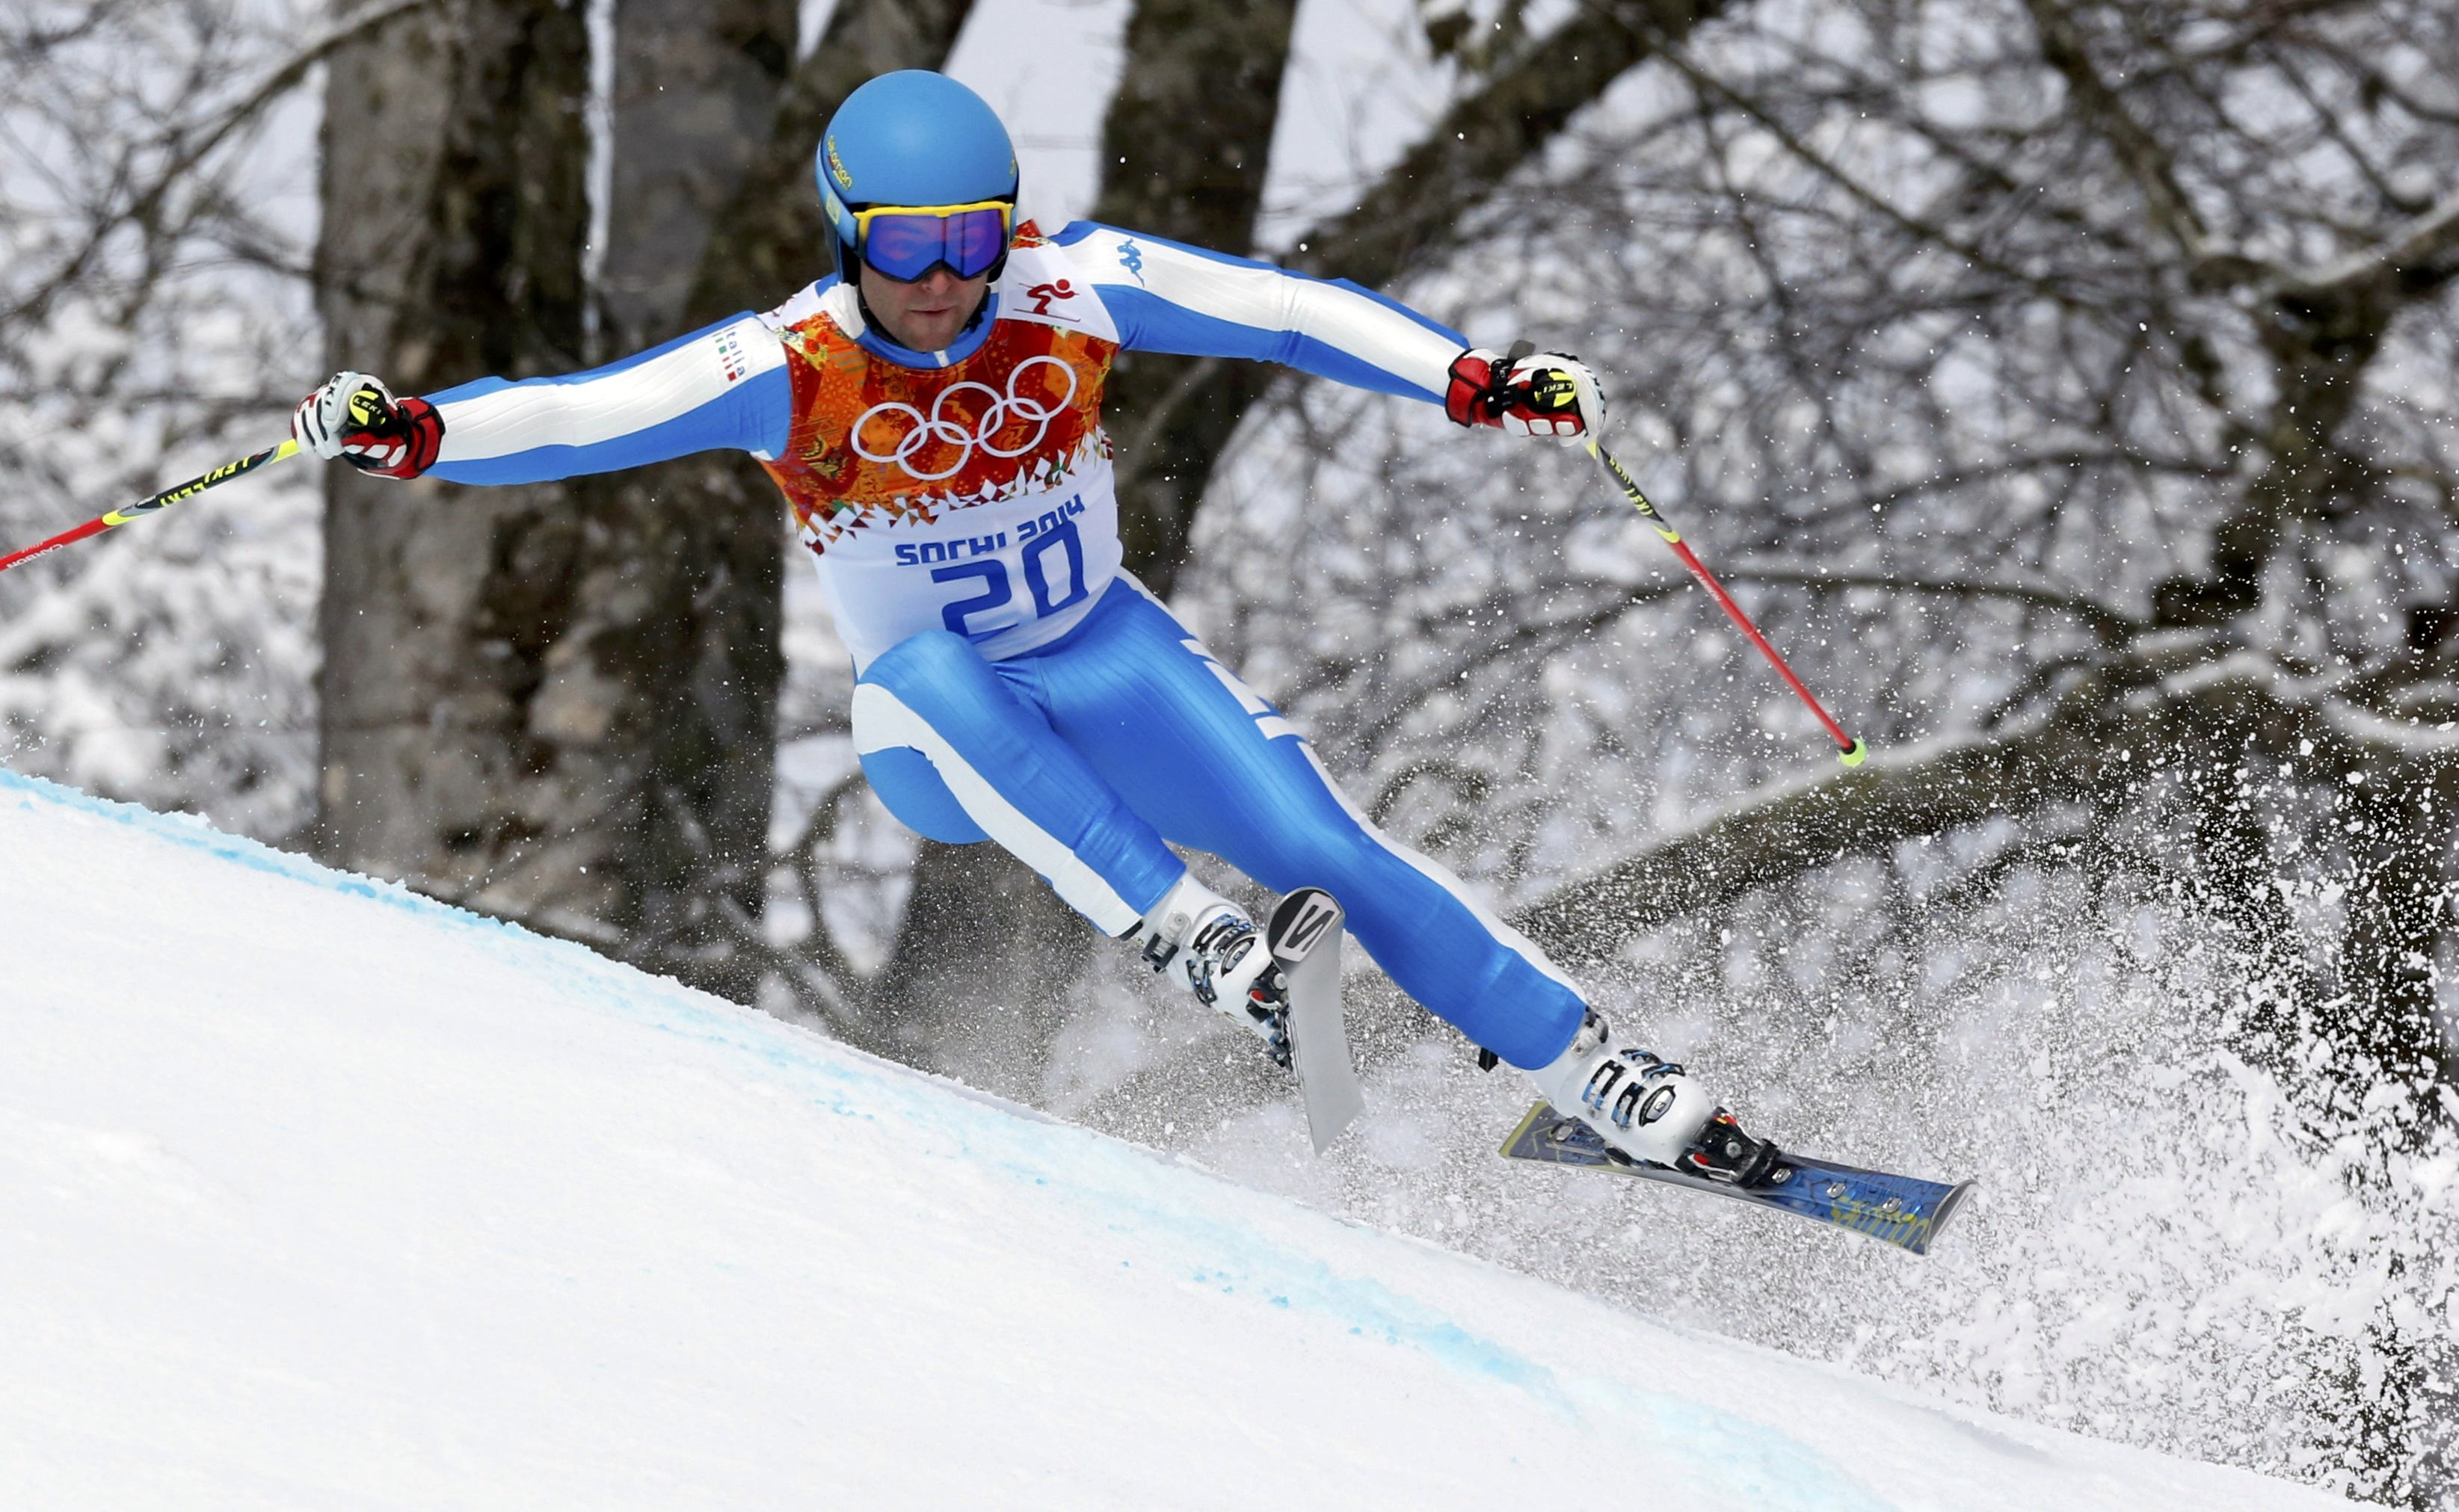 Sochi Olympics Day 14 Injury Ends Games For Bode Miller